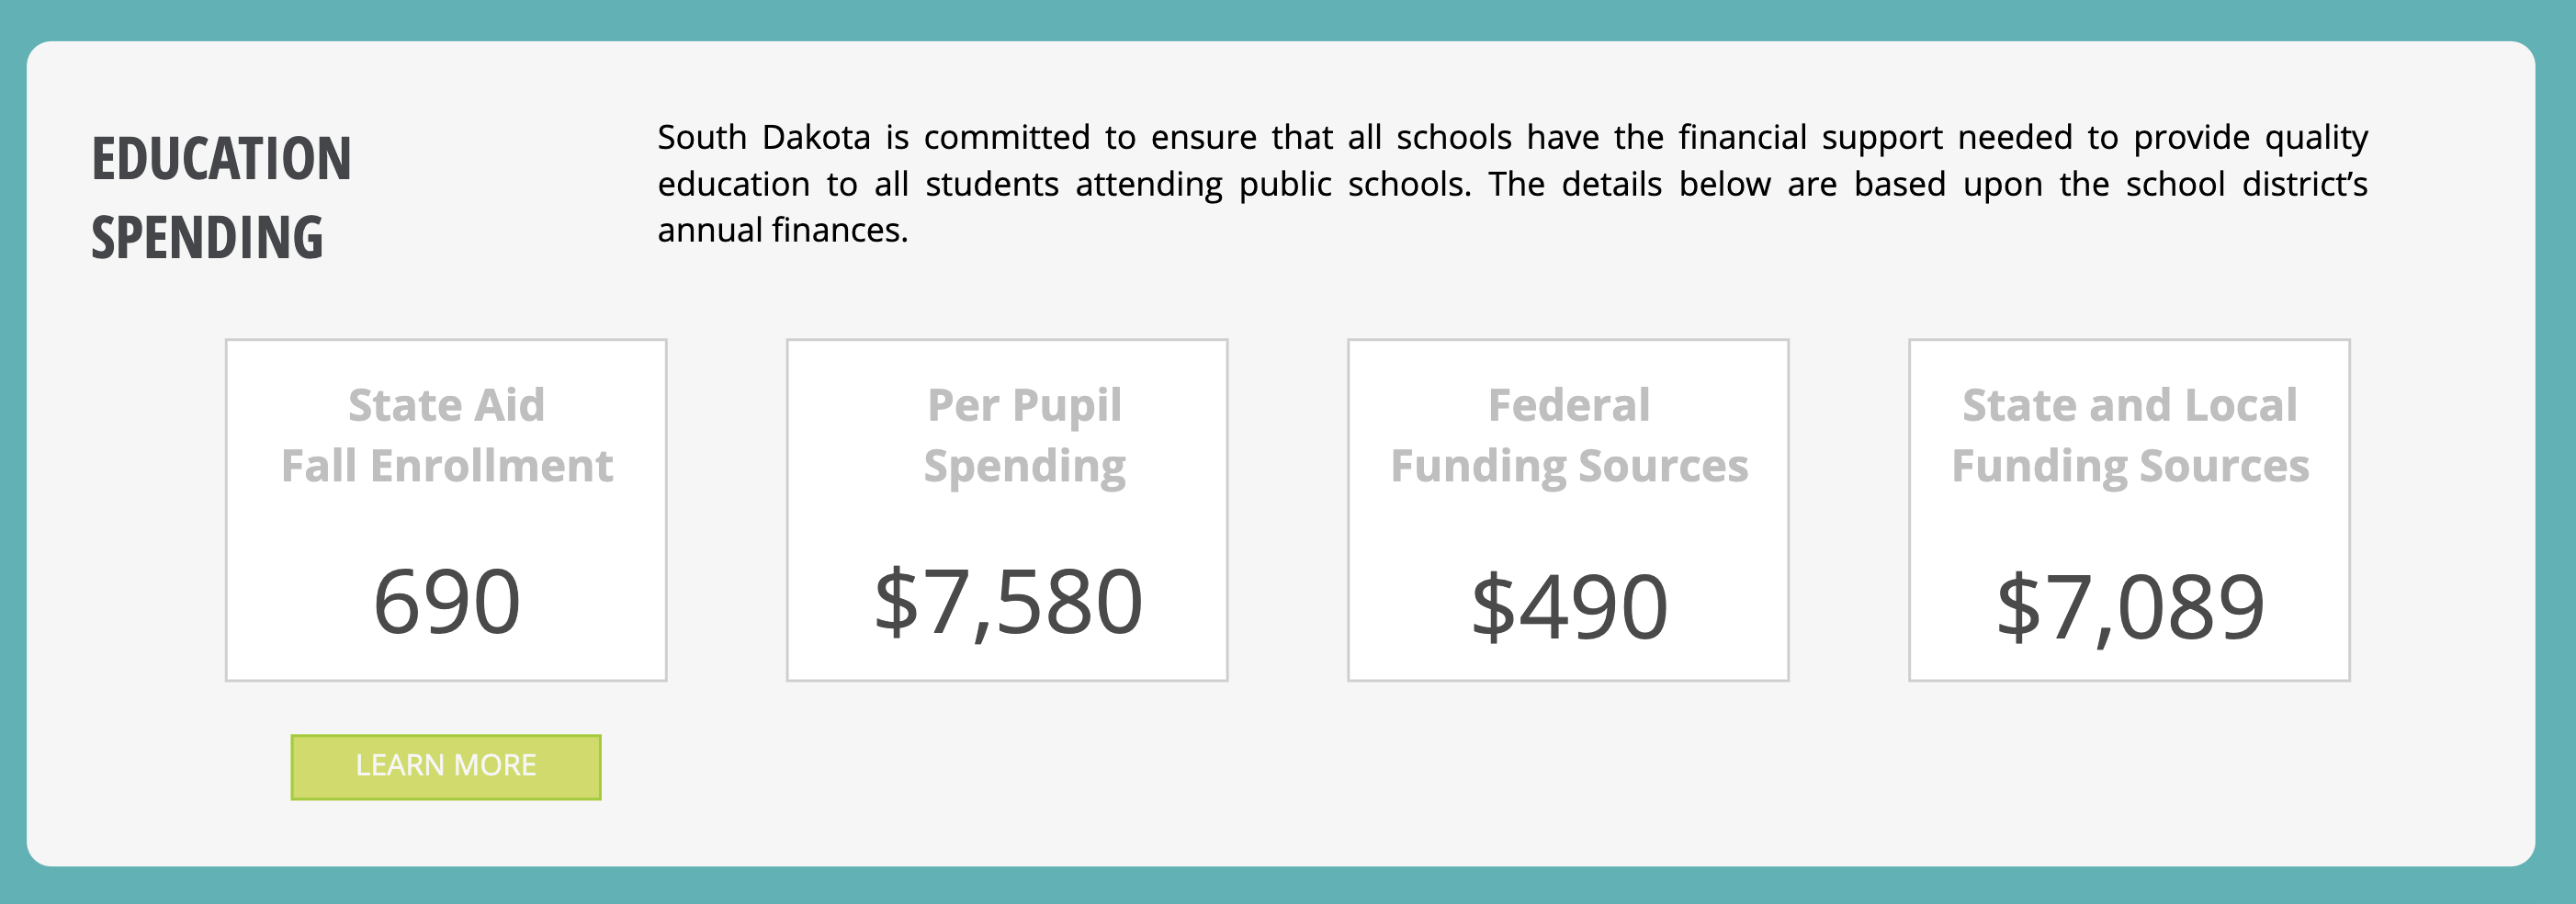 Education spending. South Dakota is committed to ensure that all schools have the financial support needed to provide quality education to all students attending public schools. The details below are based upon the school district's annual finances. State Aid fall enrollment = 690. Per pupil spending = $7,580. Federal funding sources = $490. State & local funding sources = $7,089